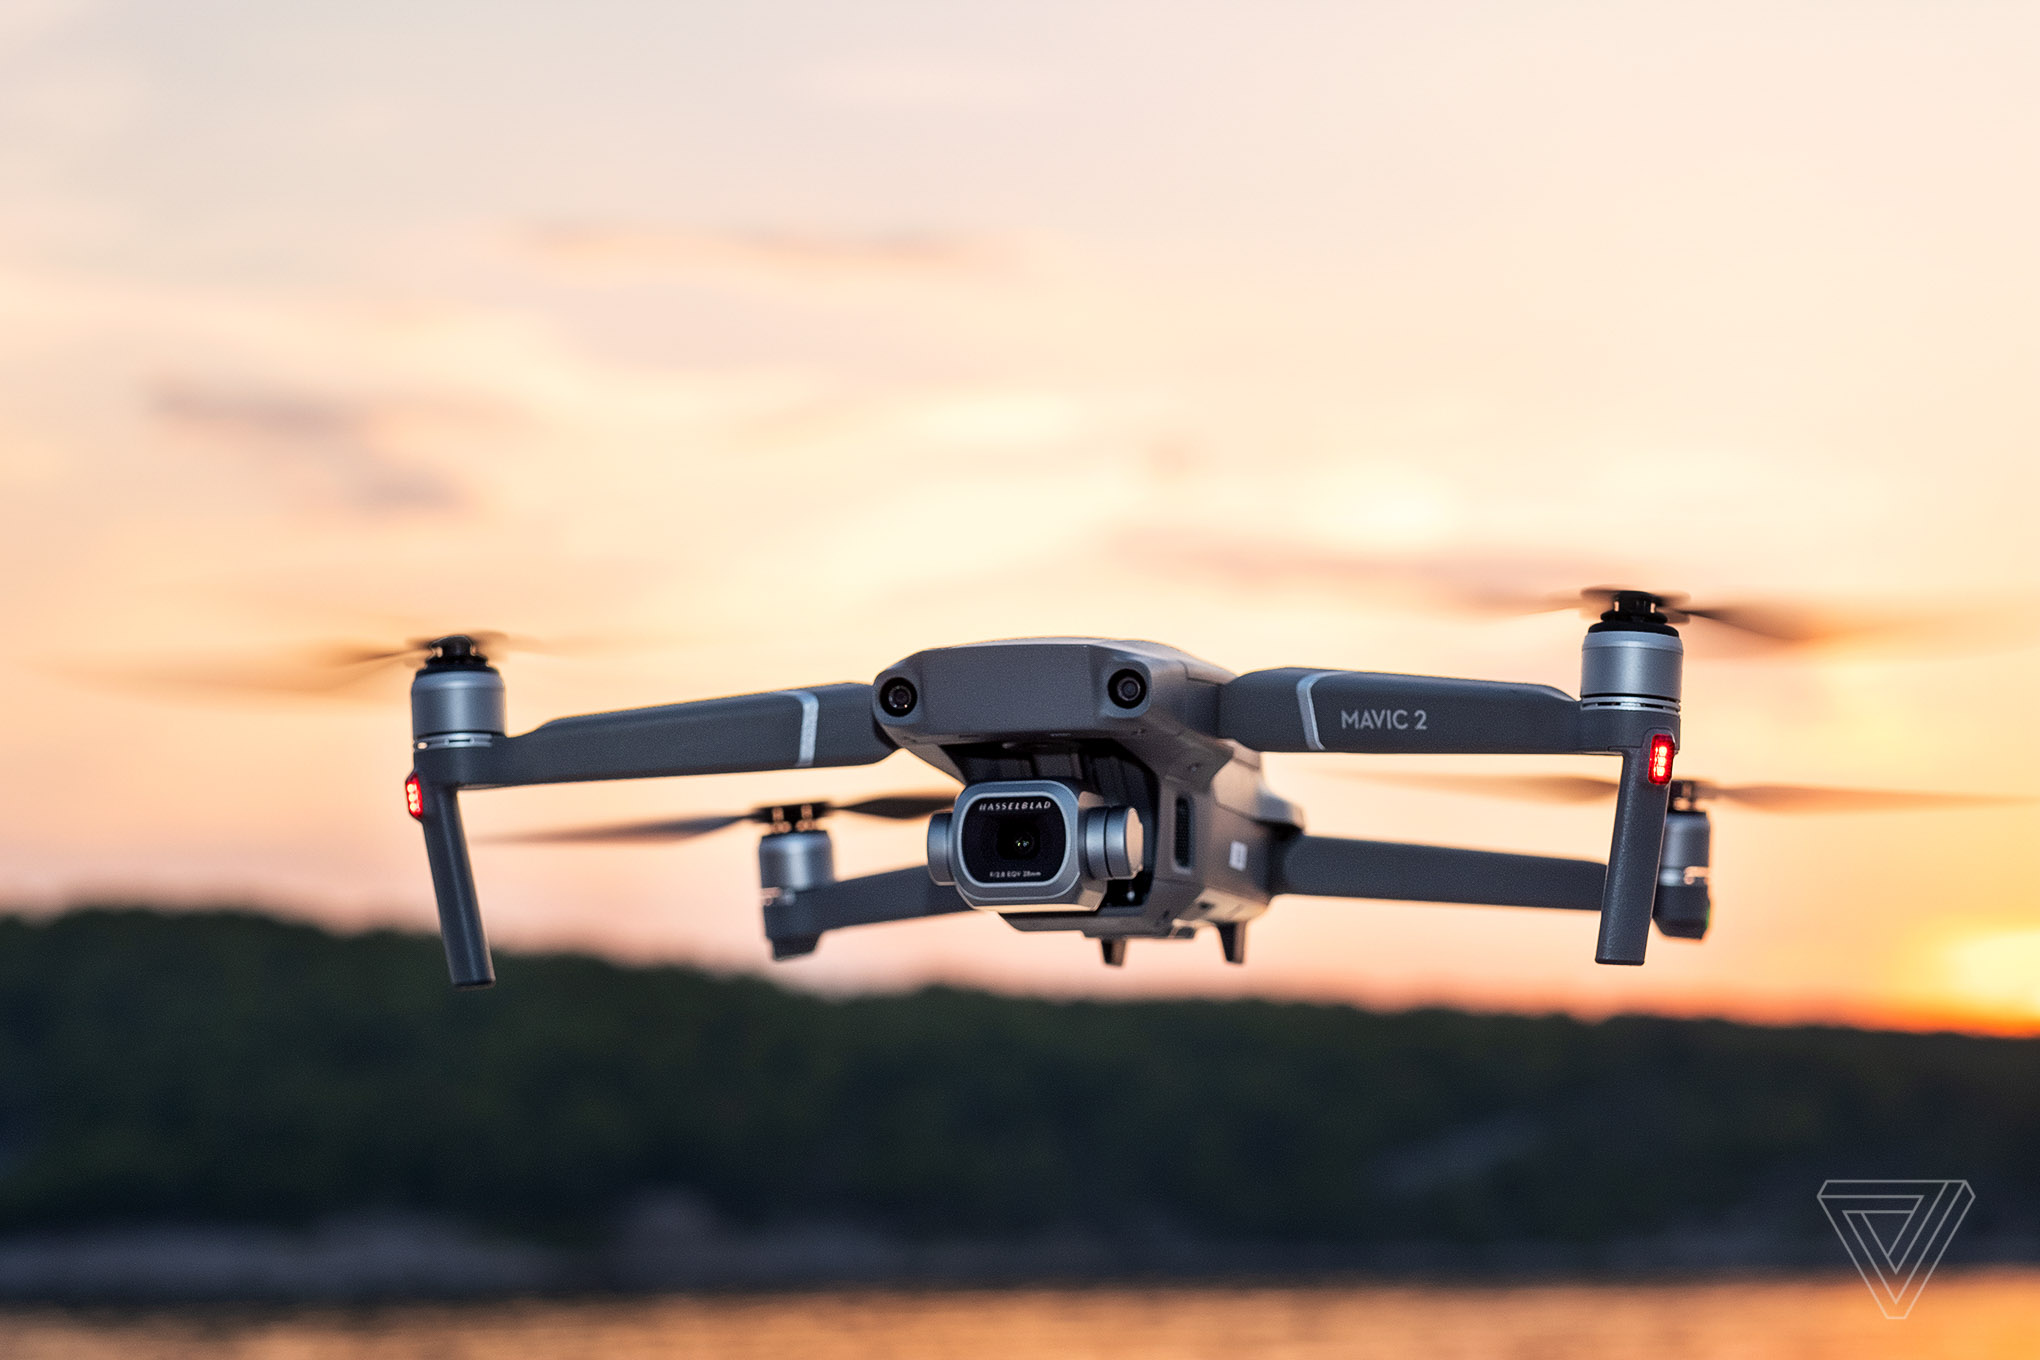 Best Drones 2020 Under 200 DJI will add airplane and helicopter detectors to new drones in